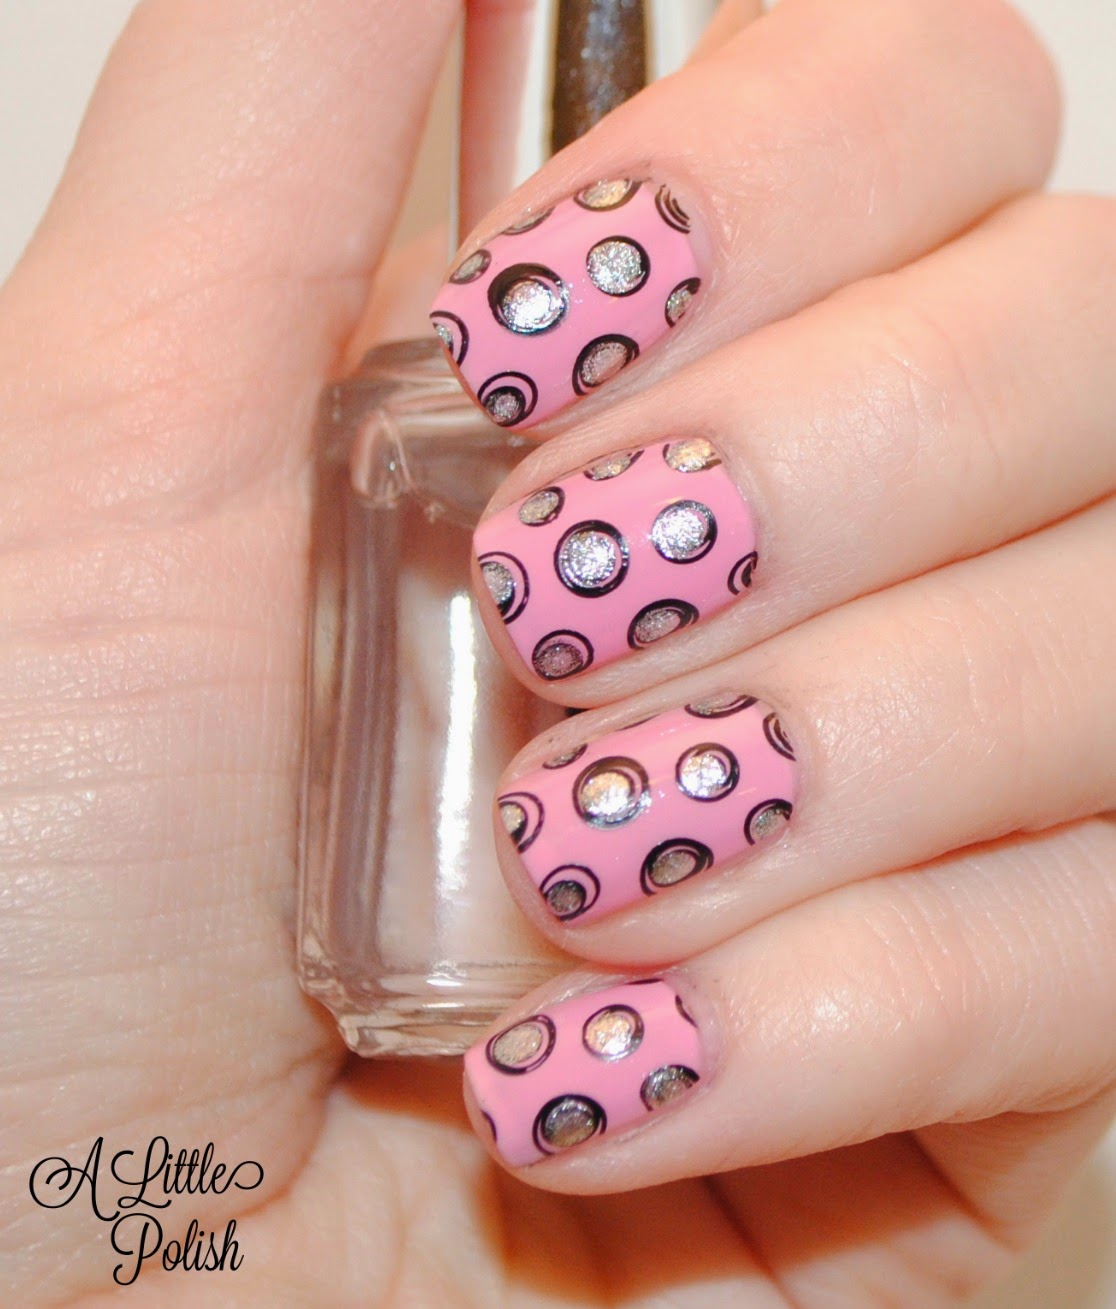 Nail Art For Nubs Link-Up